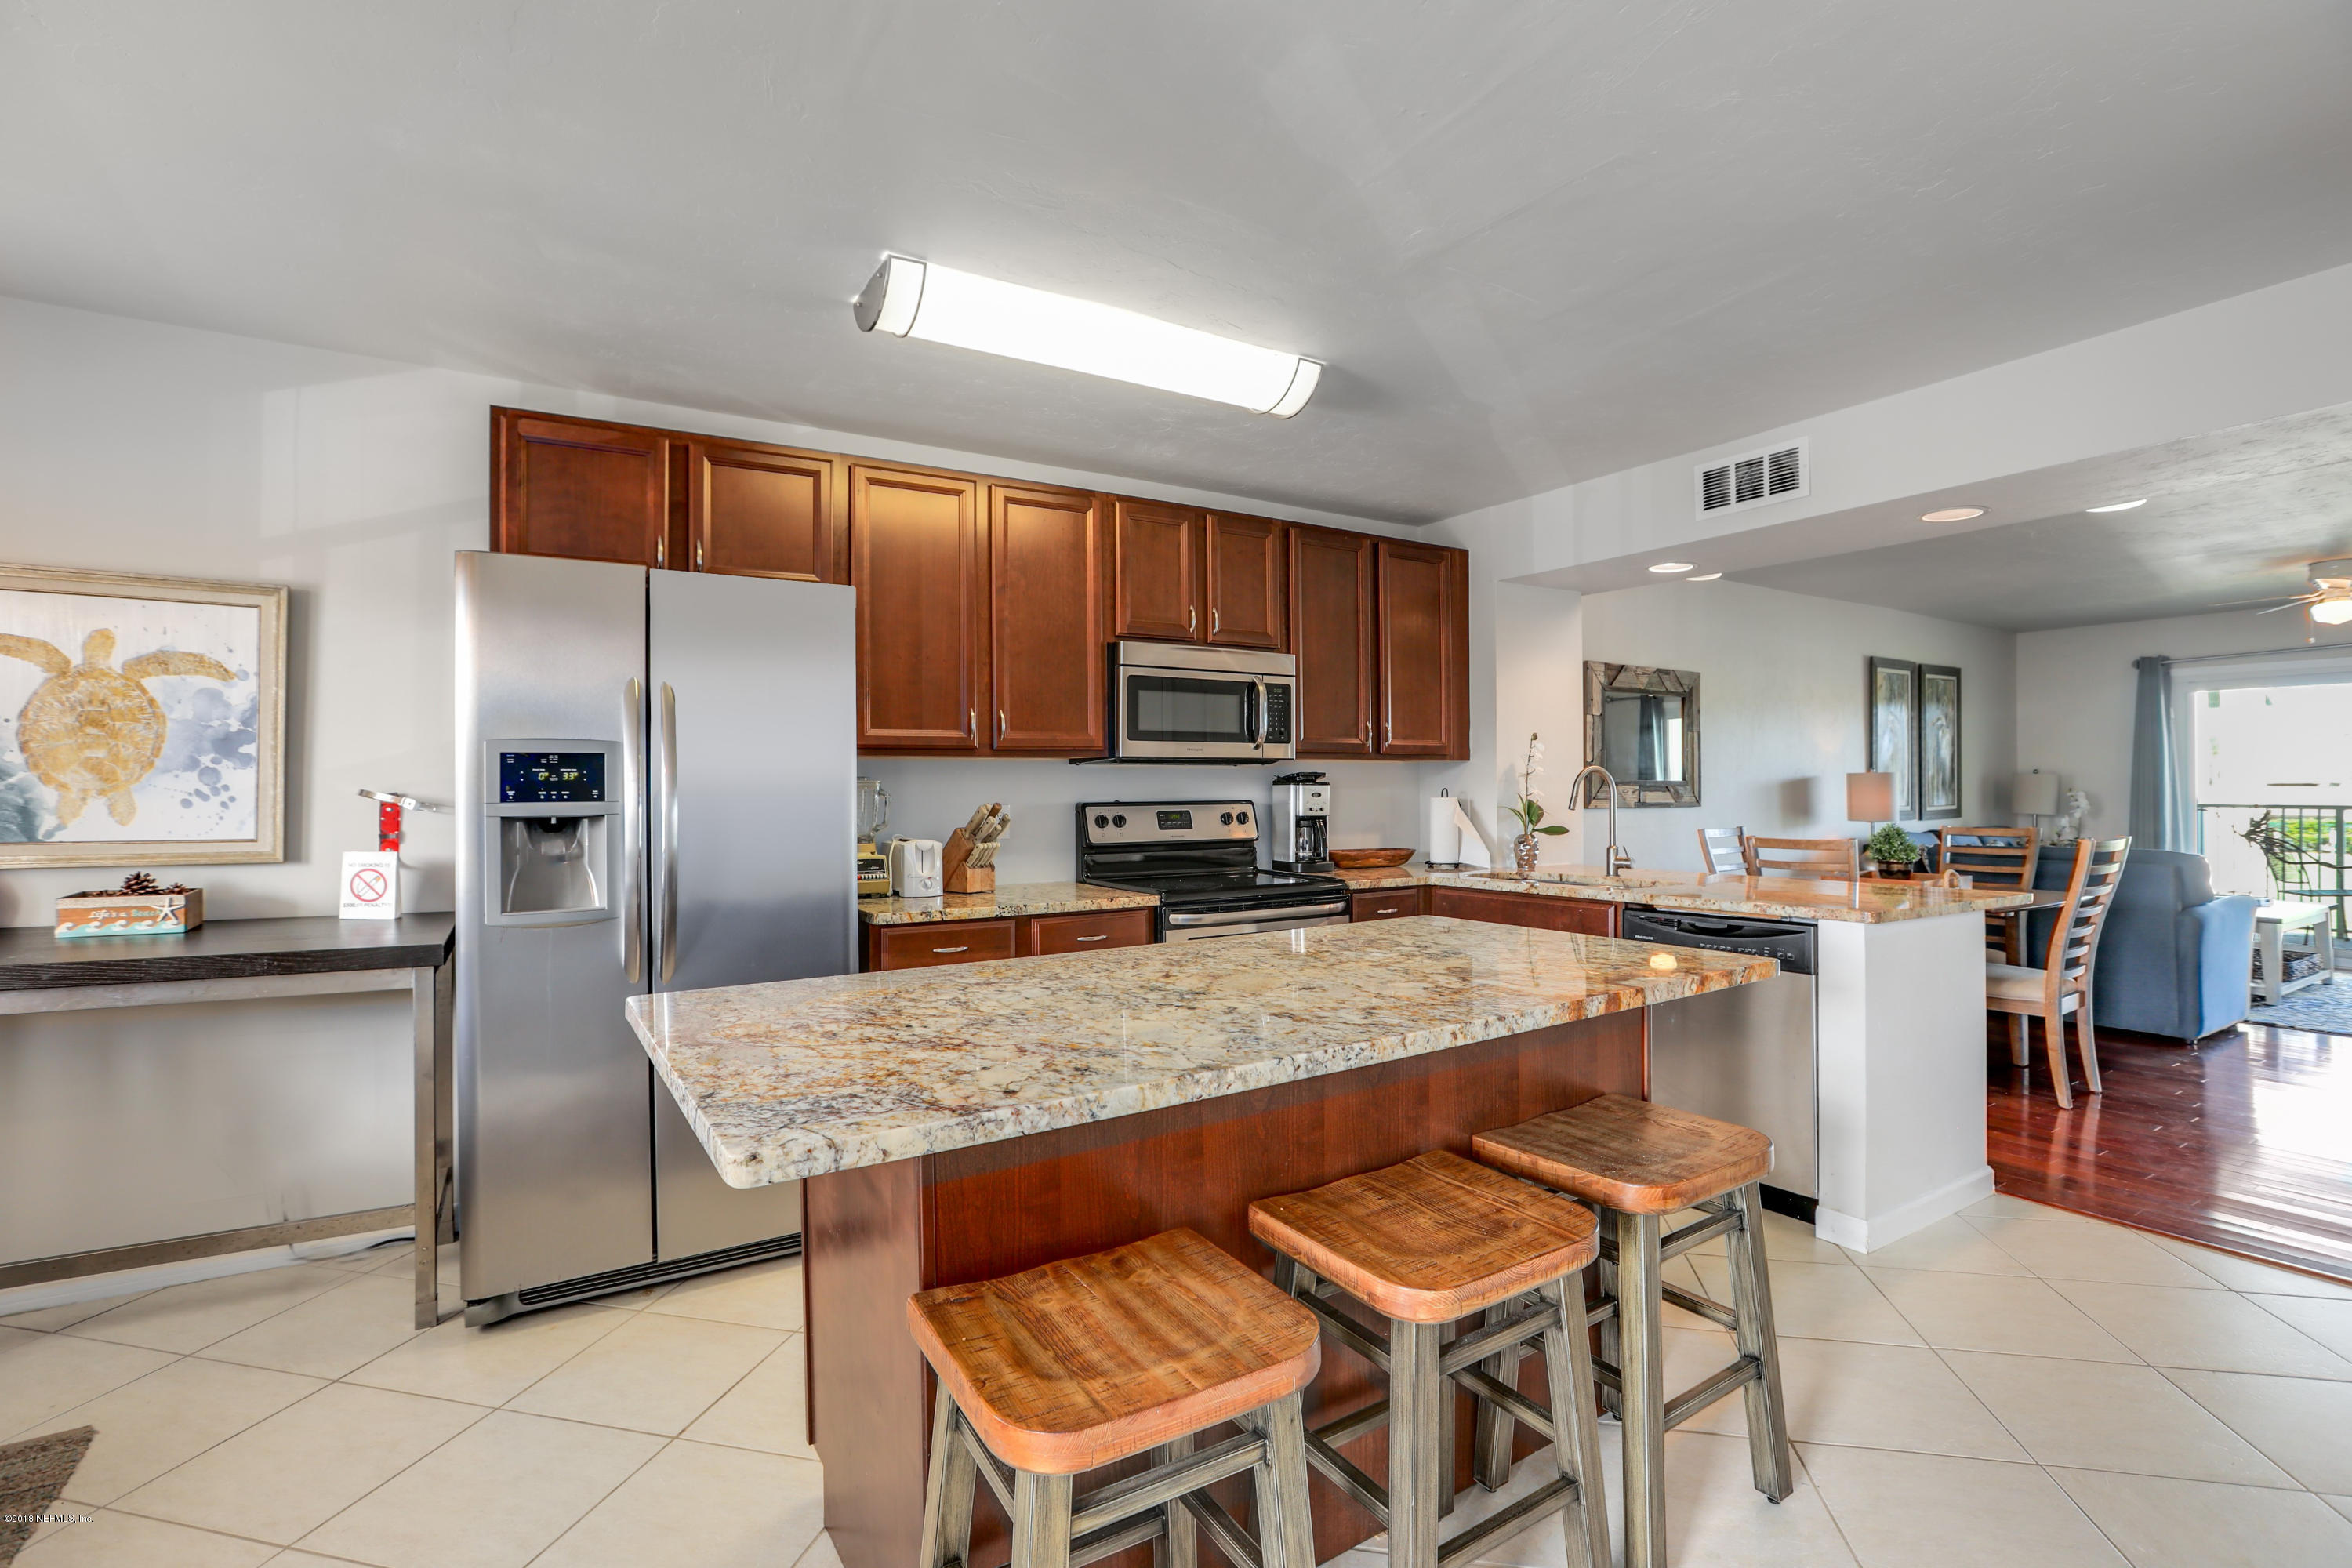 4670 A1A, ST AUGUSTINE, FLORIDA 32080, 2 Bedrooms Bedrooms, ,2 BathroomsBathrooms,Residential - condos/townhomes,For sale,A1A,963620